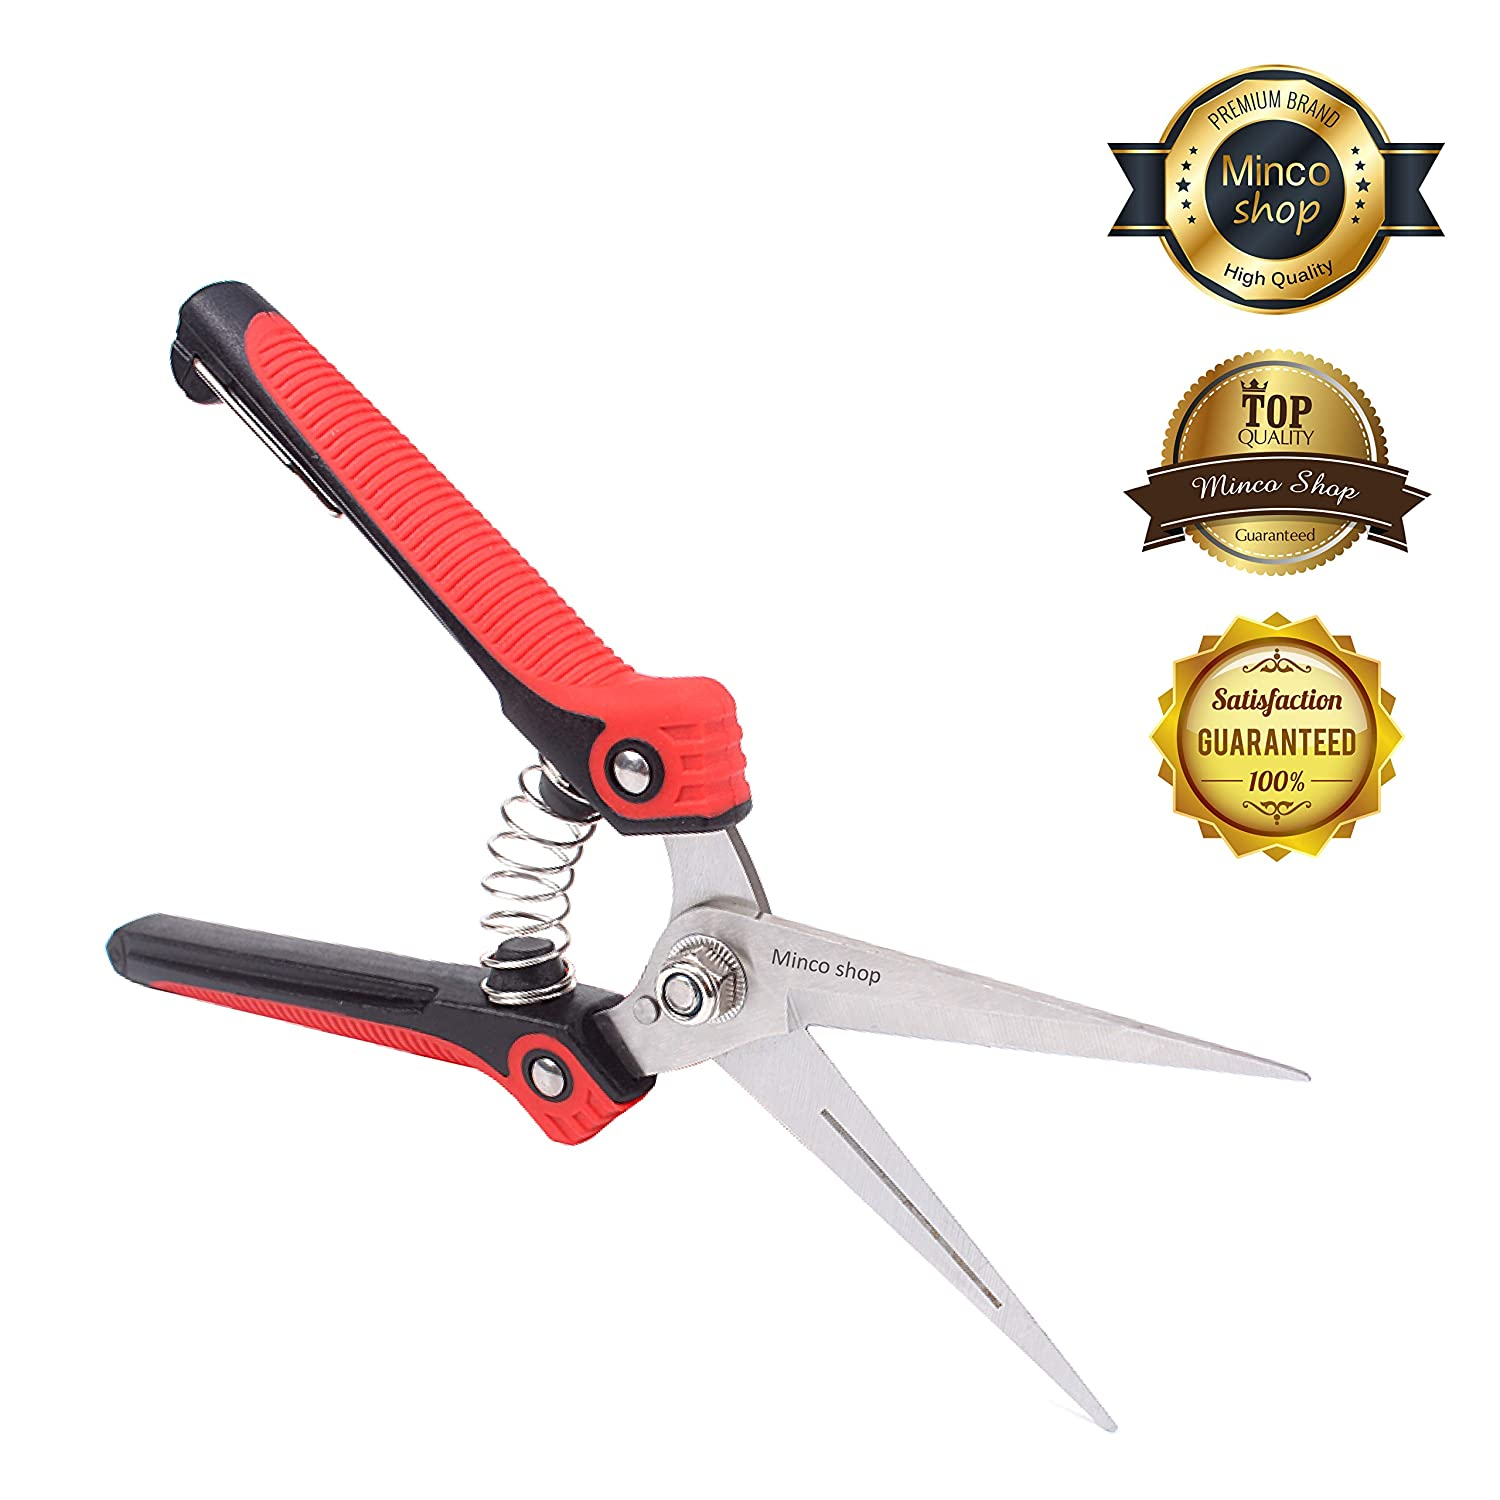 Minco shop Pruning Shears, Gardening Hand Pruner Curved Blade Pruner Premium Heavy Duty Stainless Steel Sharp Clippers red01